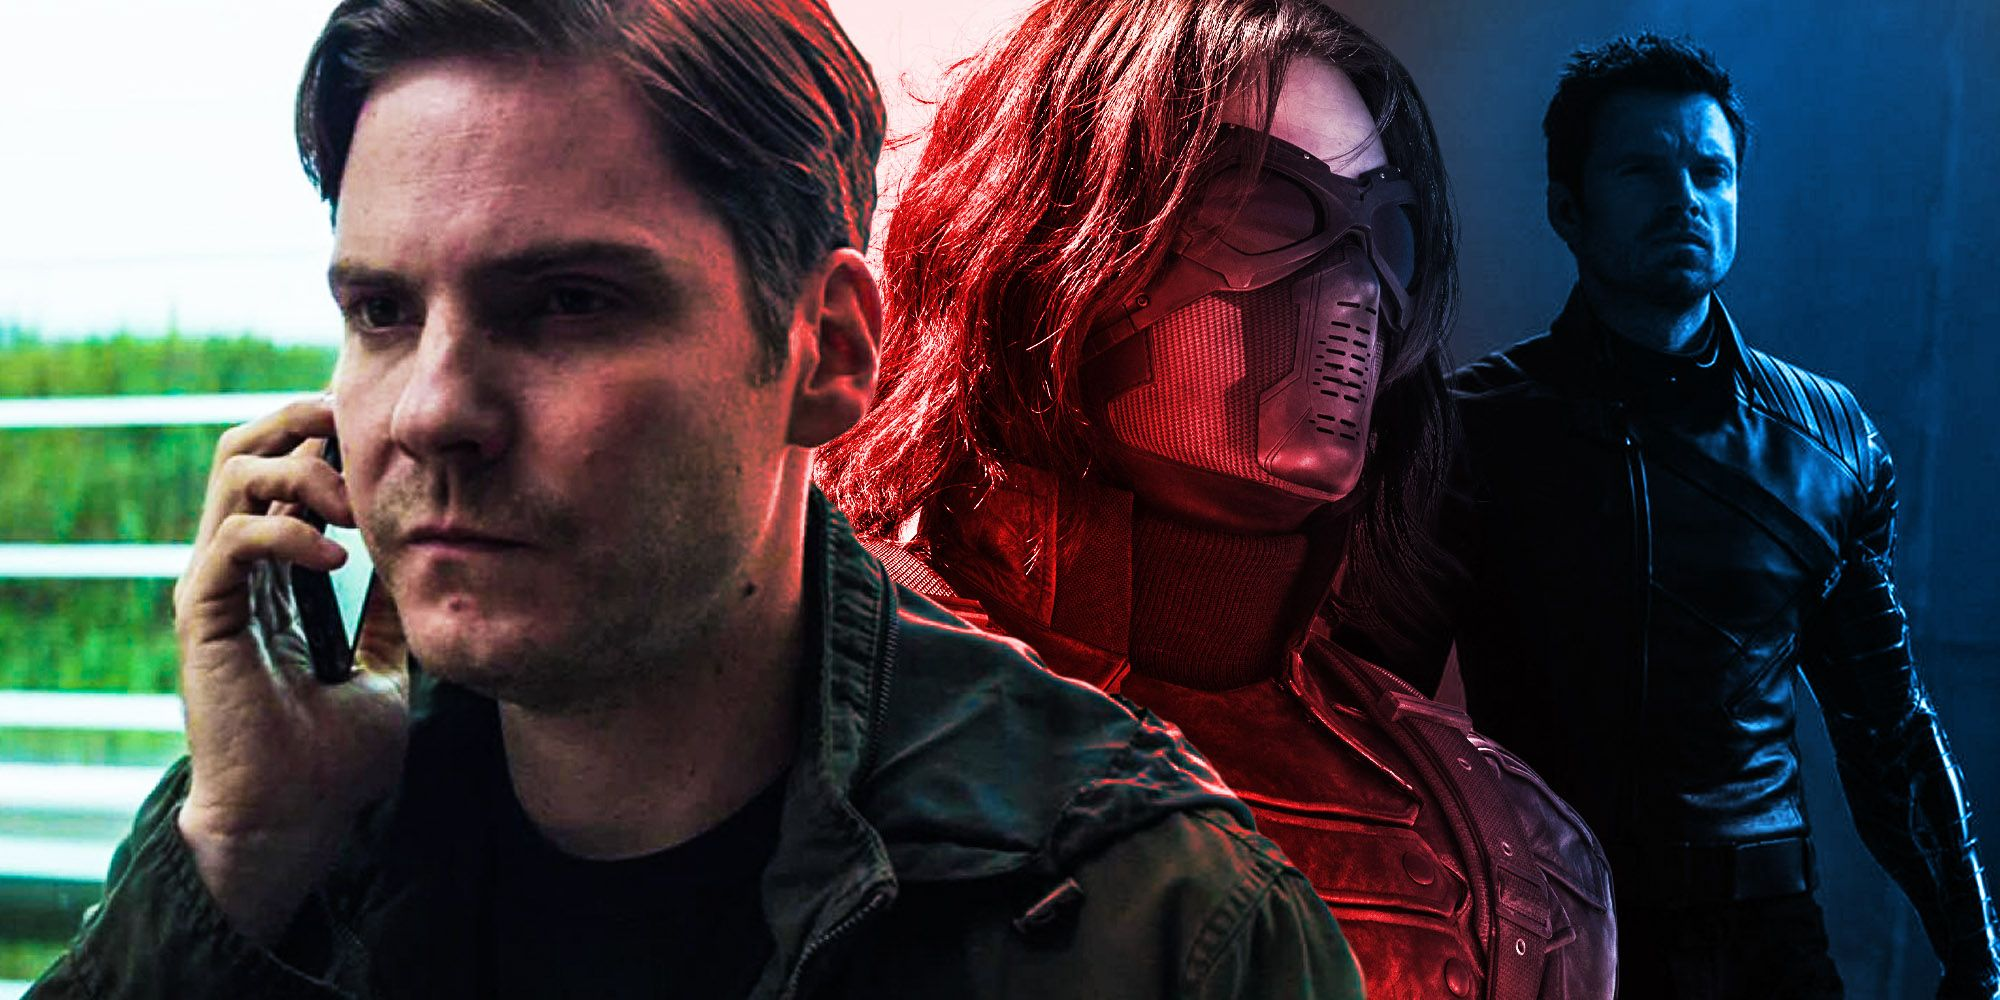 Baron Zemo Proved He Doesn't Need Hydra To Control Winter Soldier